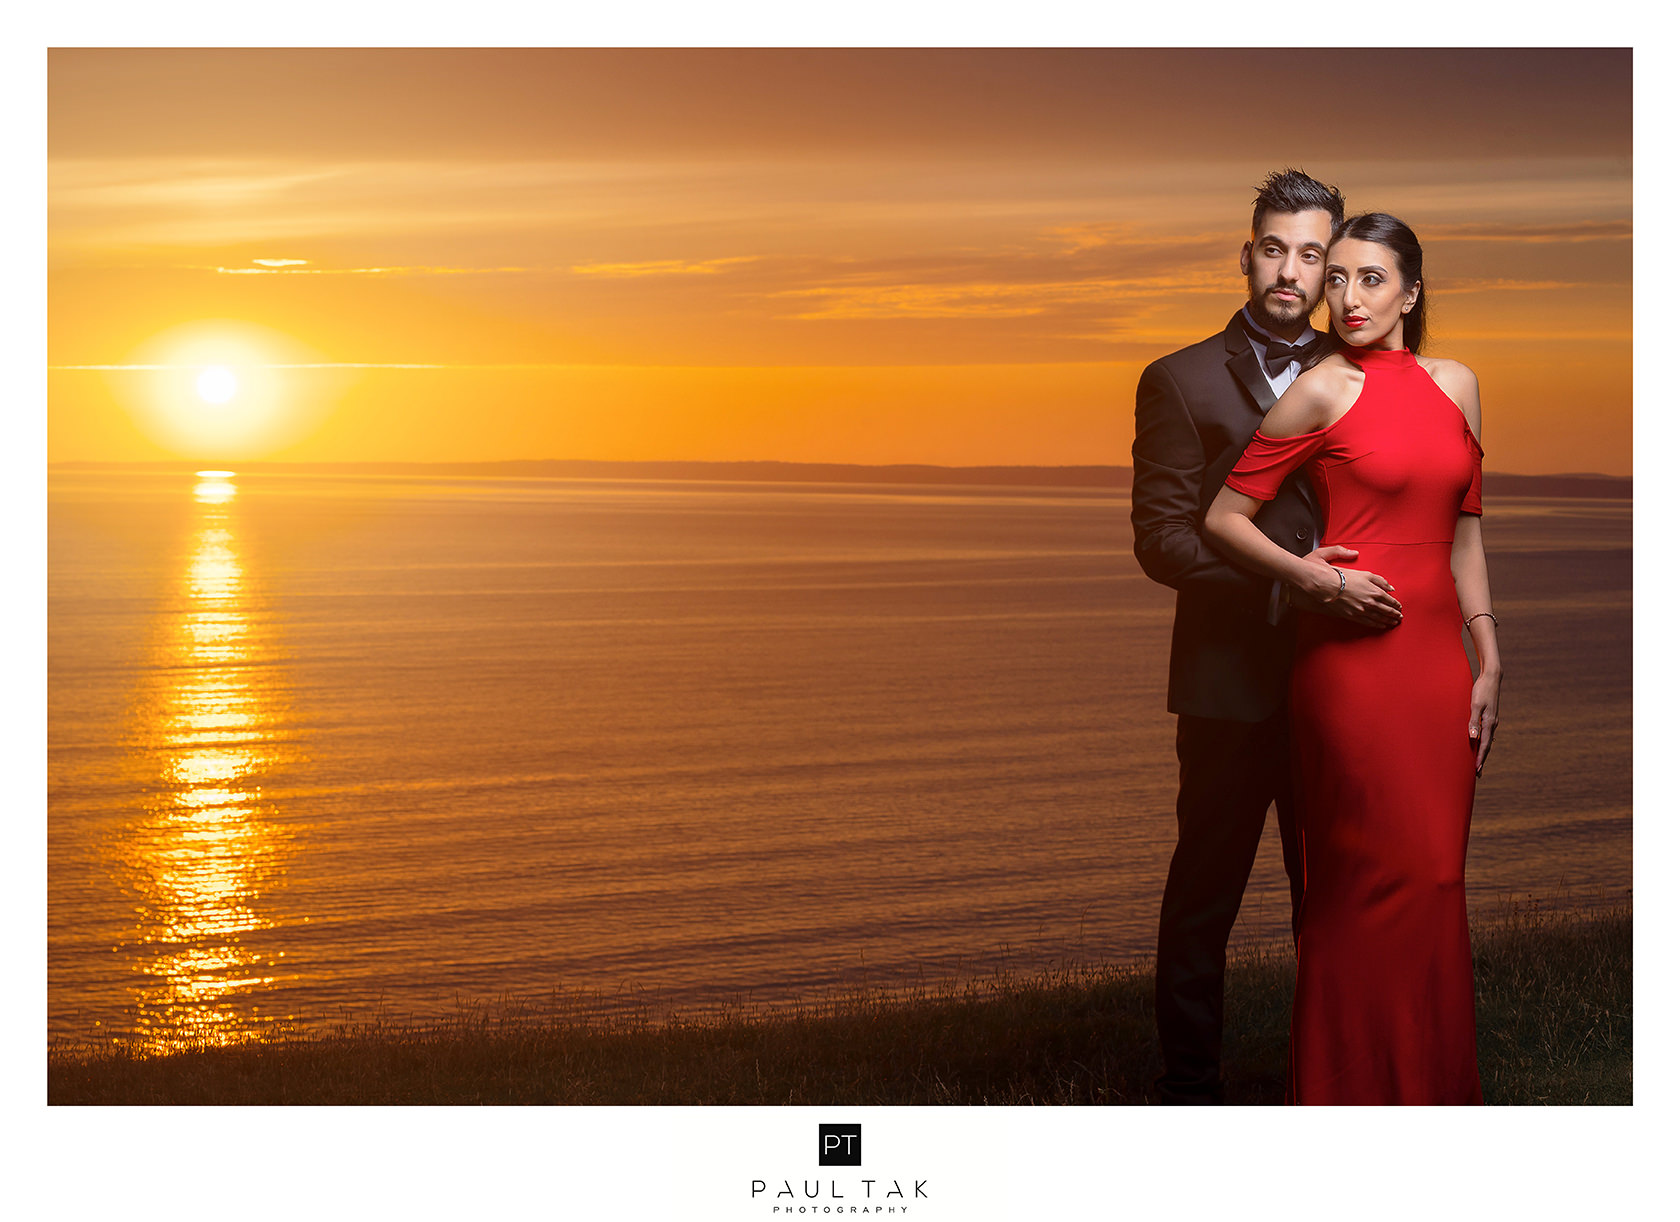 Sunset Asian wedding photography Paul Tak